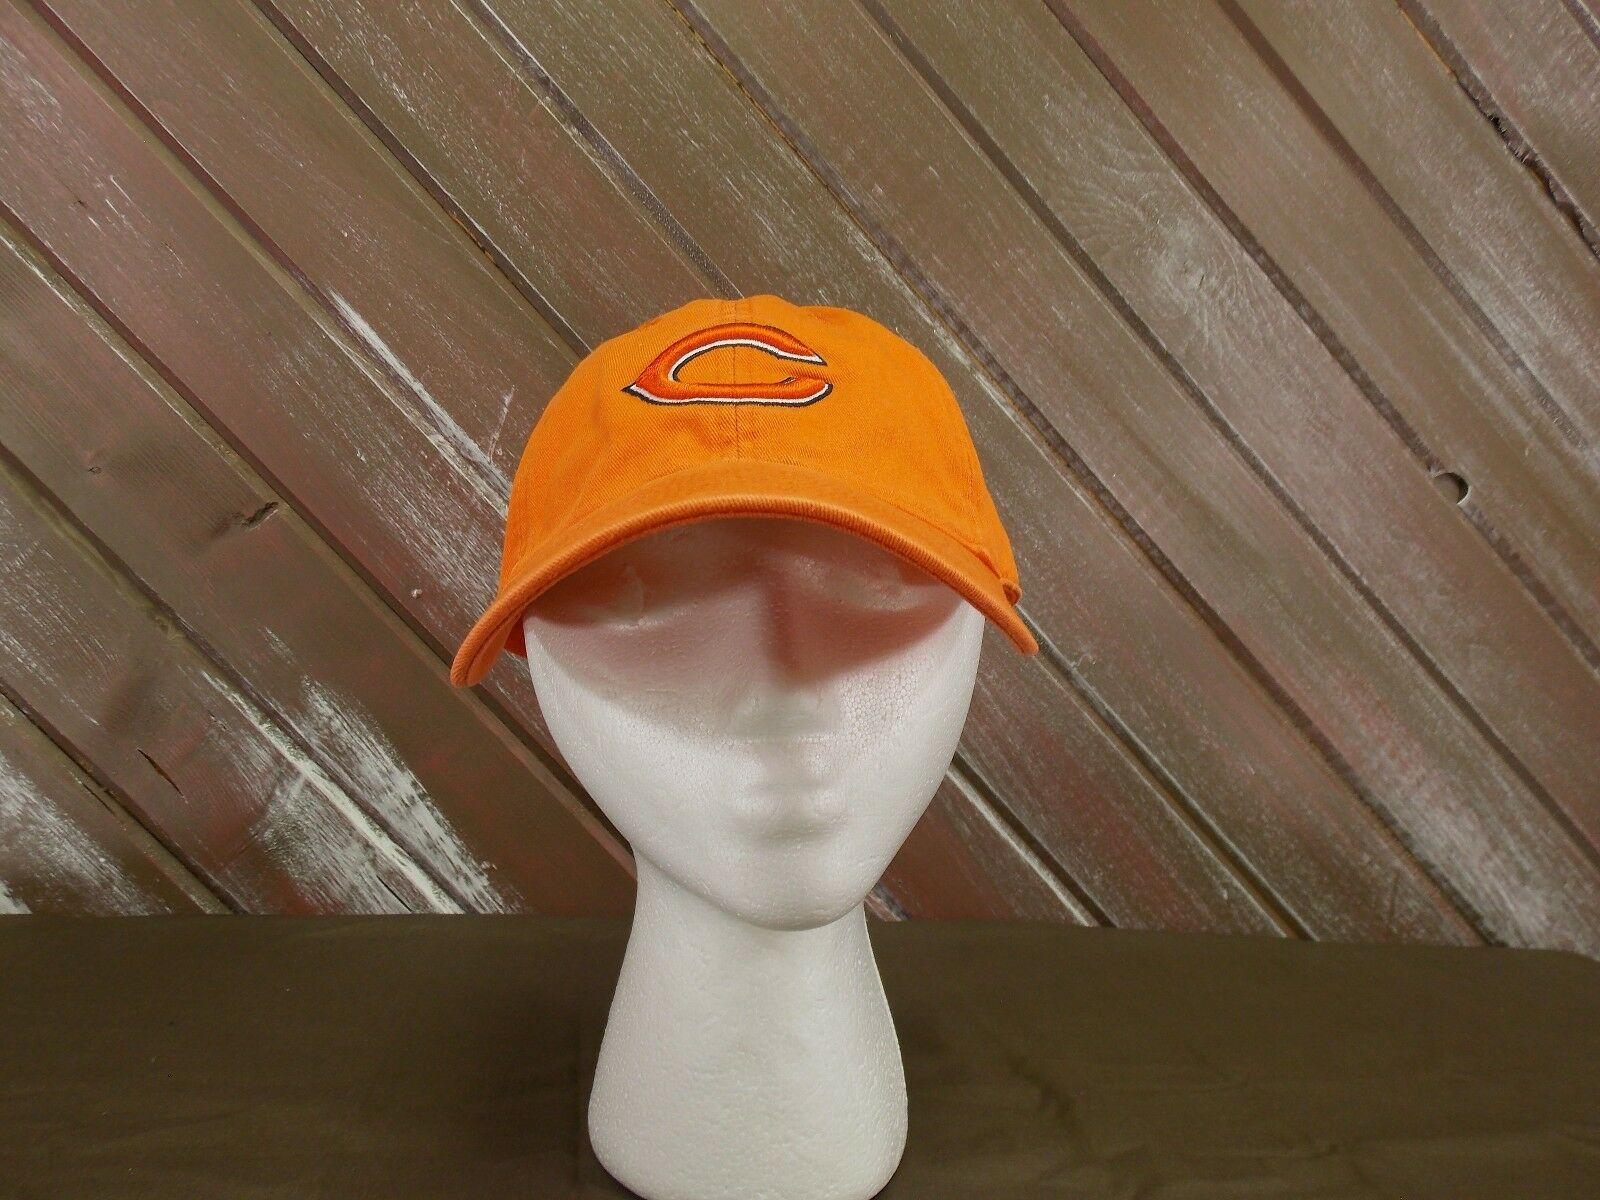 Chicago Bears One Football Baseball Cap Hat Lid  Orange One Bears Size Strap Back b59013